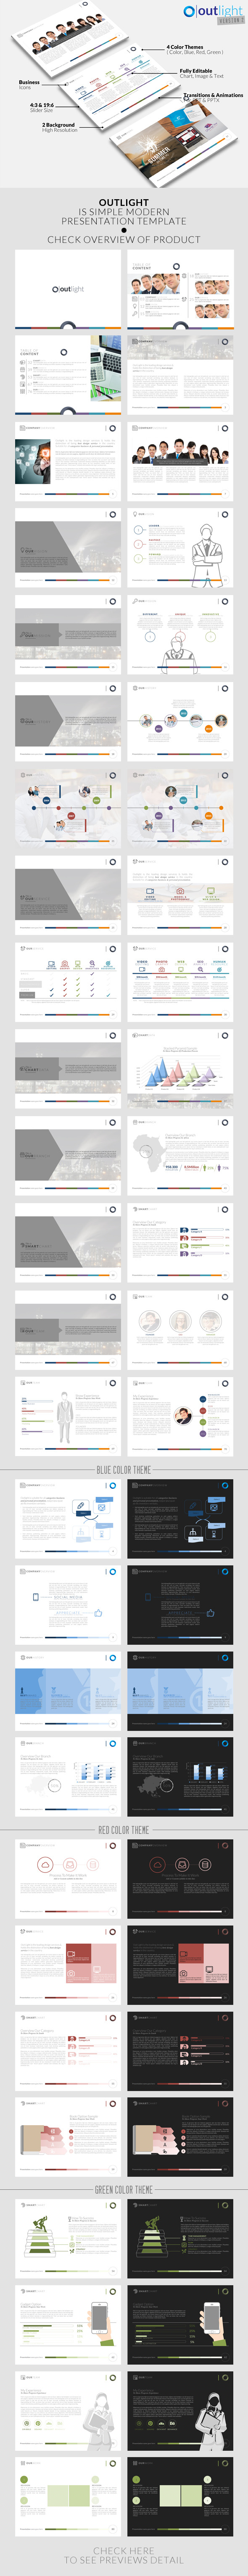 GraphicRiver Outlight v2 Powerpoint Template 11018315